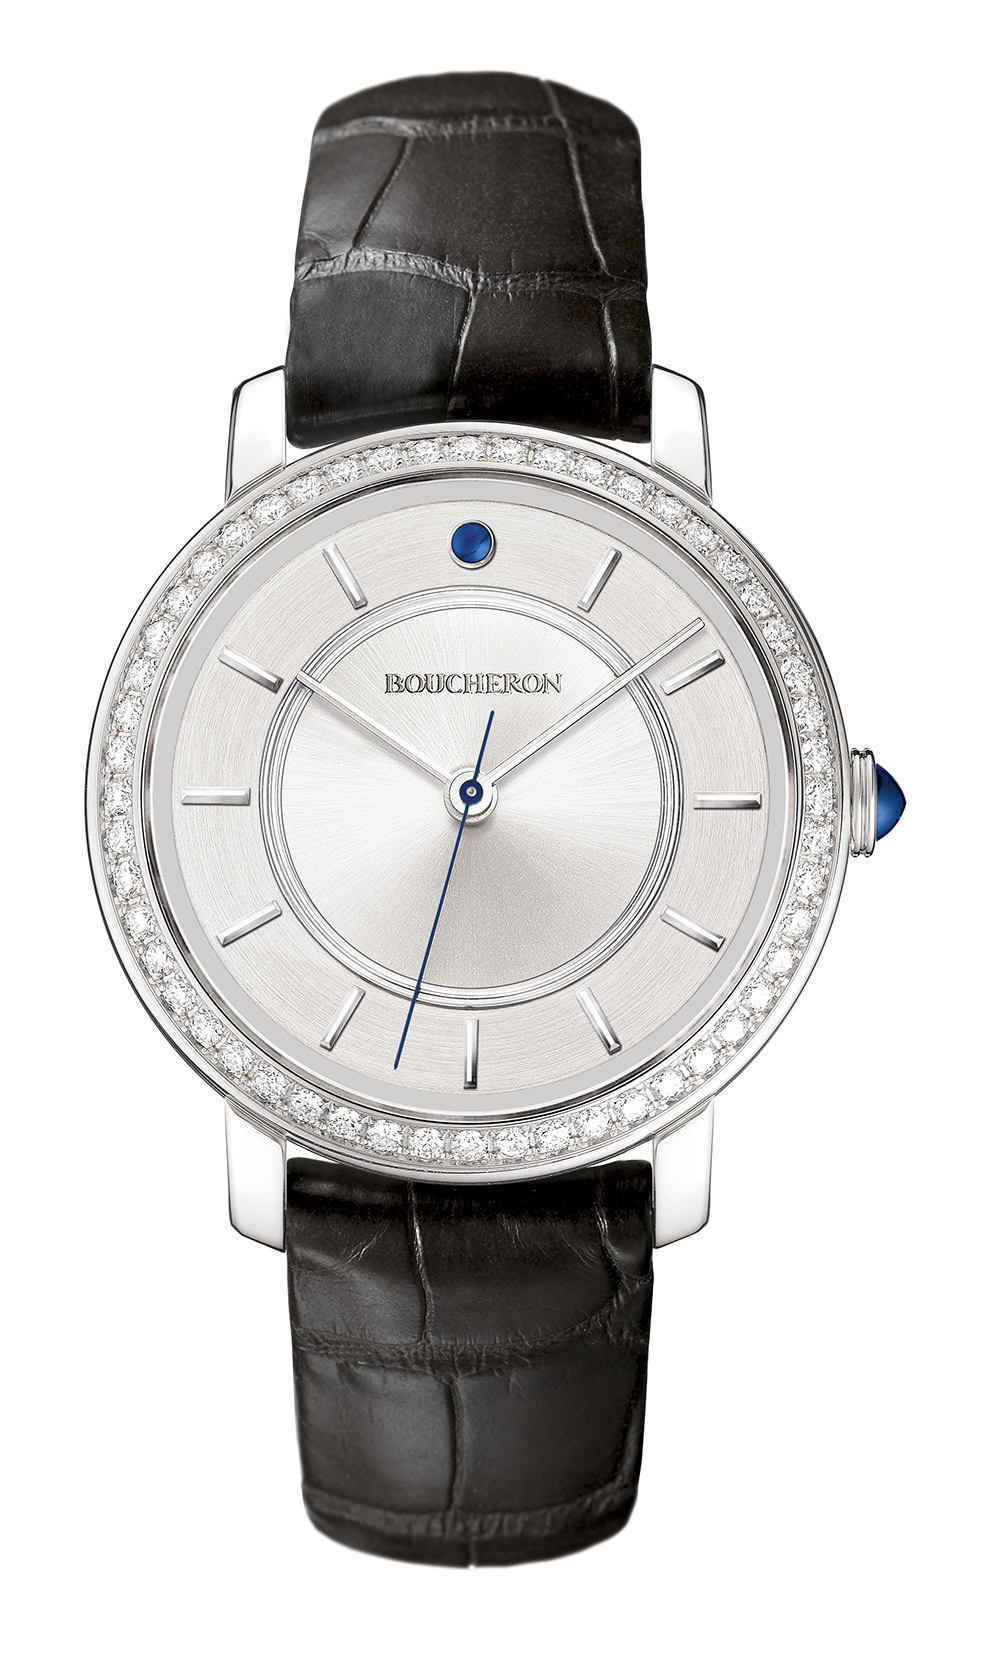 Reloj Epure Boucheron oro blanco y diamantes en 38mm